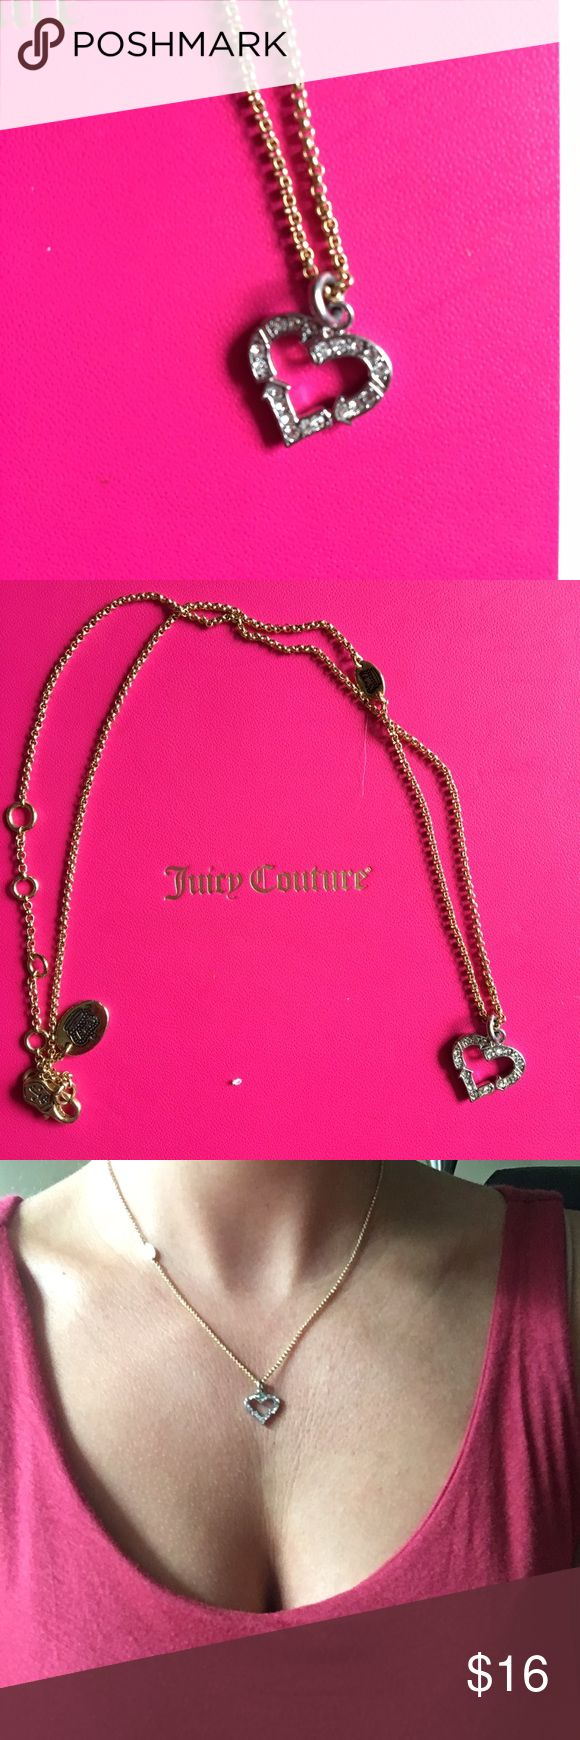 Recycle Heart Juicy Couture necklace Recycle heart with rhinestones. Gold necklace with silver charm, goes great together! Never been worn, in original packaging! Juicy Couture Jewelry Necklaces